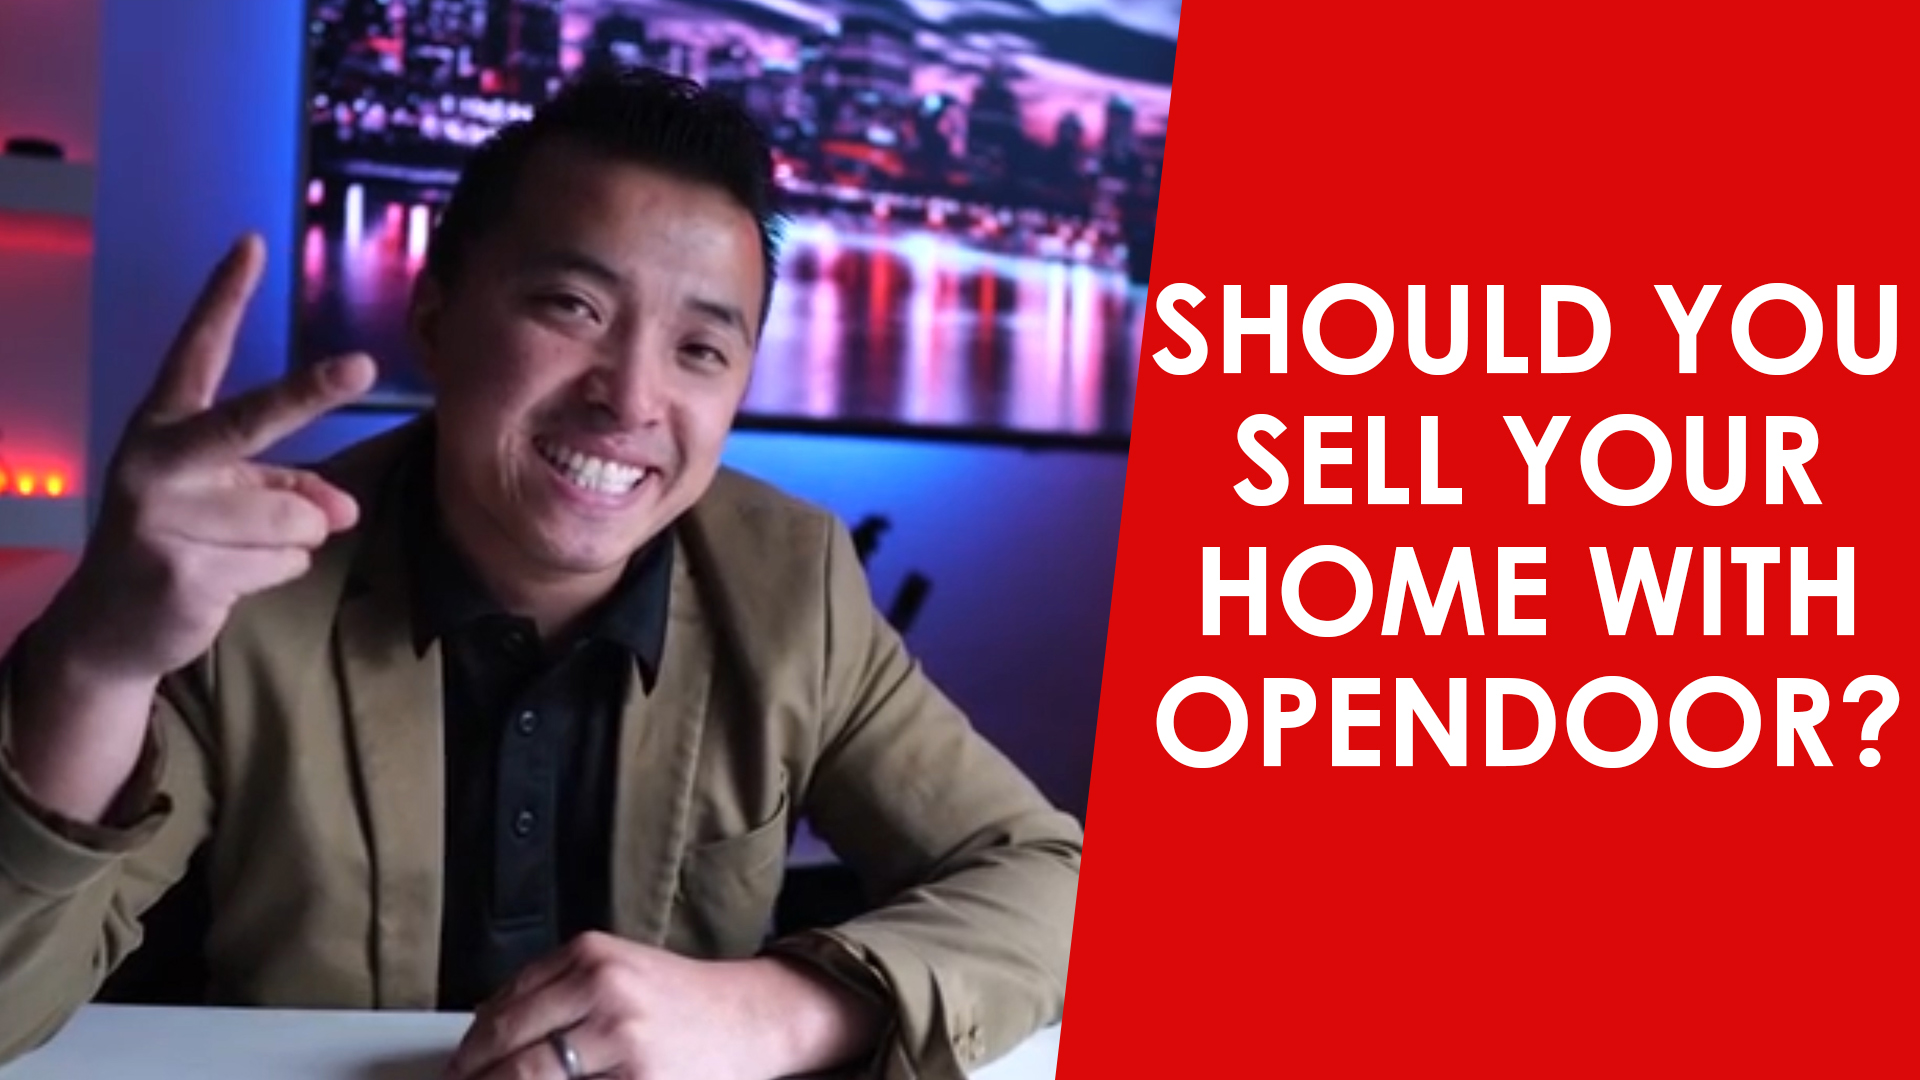 Selling Through OpenDoor vs. Selling the Traditional Way